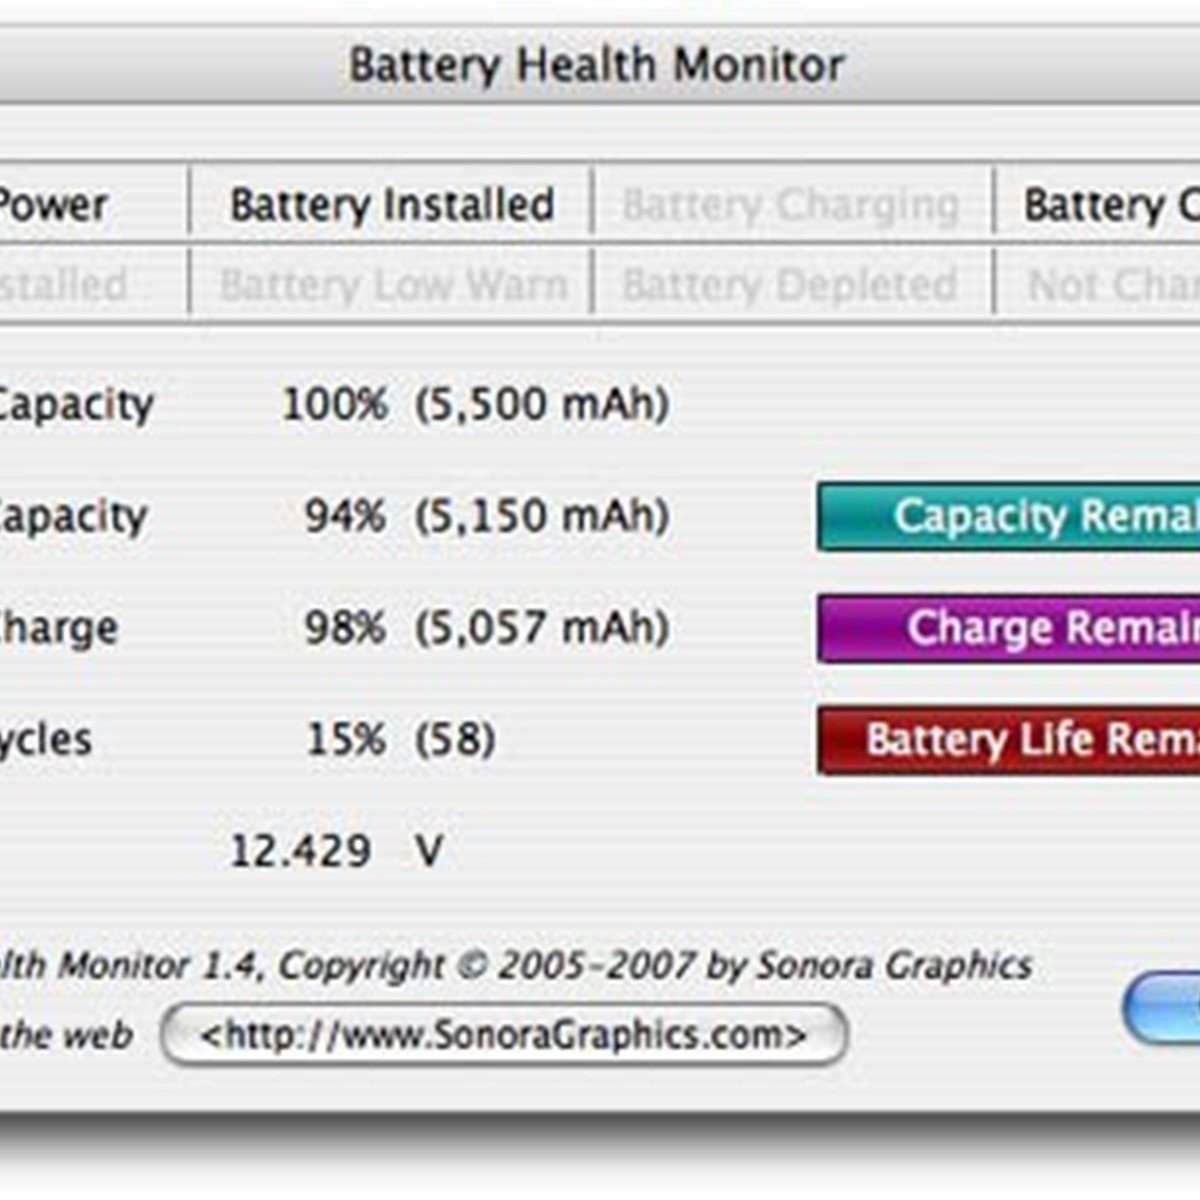 Battery Health Monitor Alternatives and Similar Software